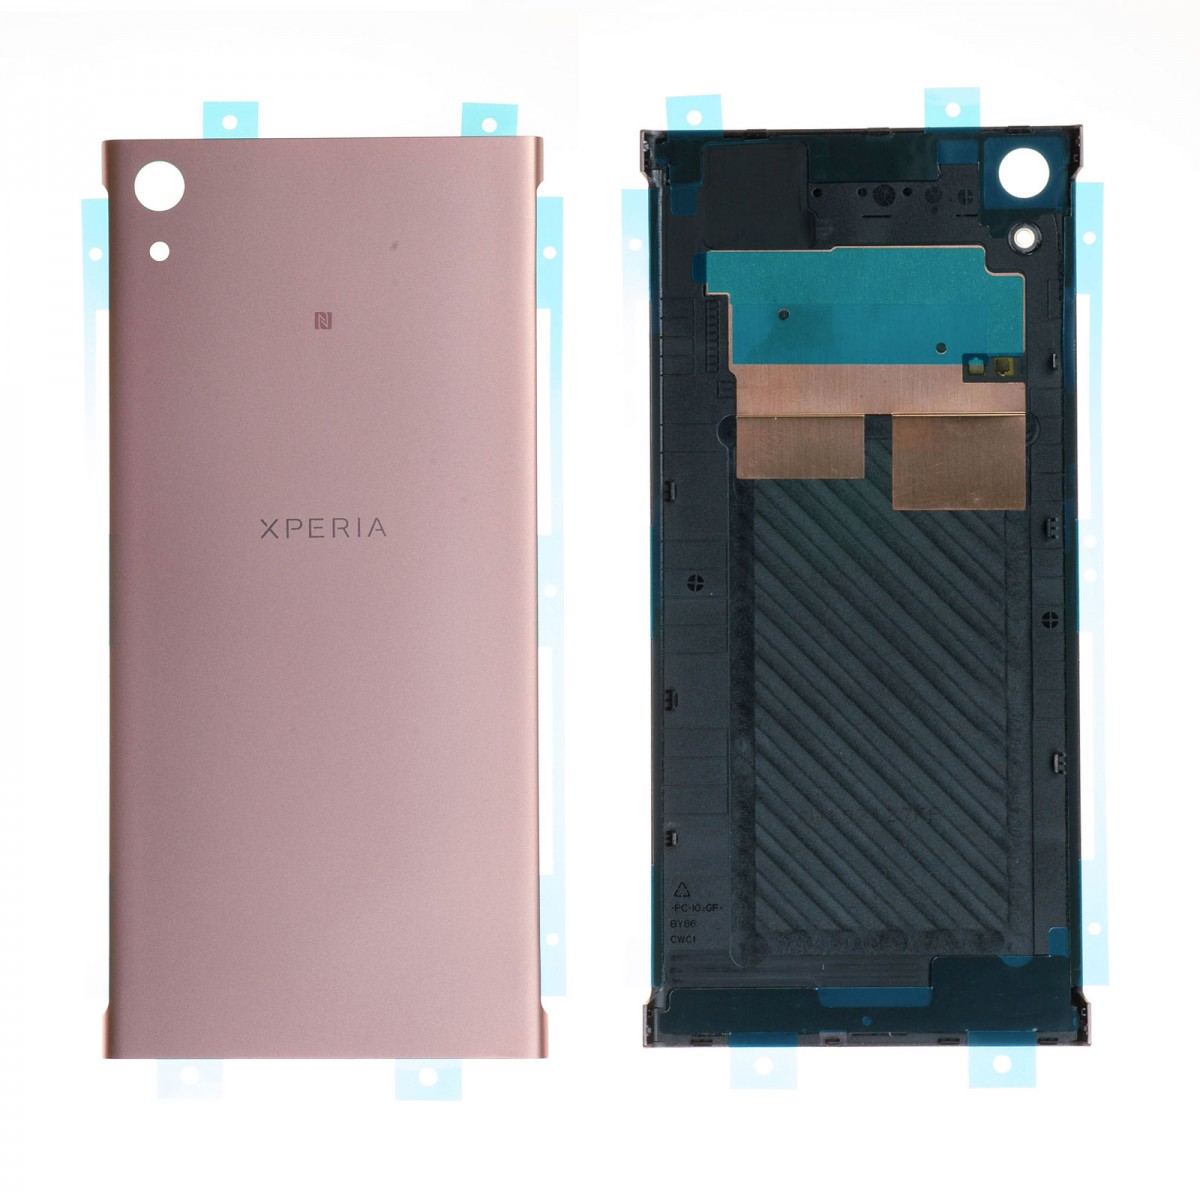 coque arri re sony xperia xa1 ultra g3221 rose achat en ligne sur lcd maroc. Black Bedroom Furniture Sets. Home Design Ideas